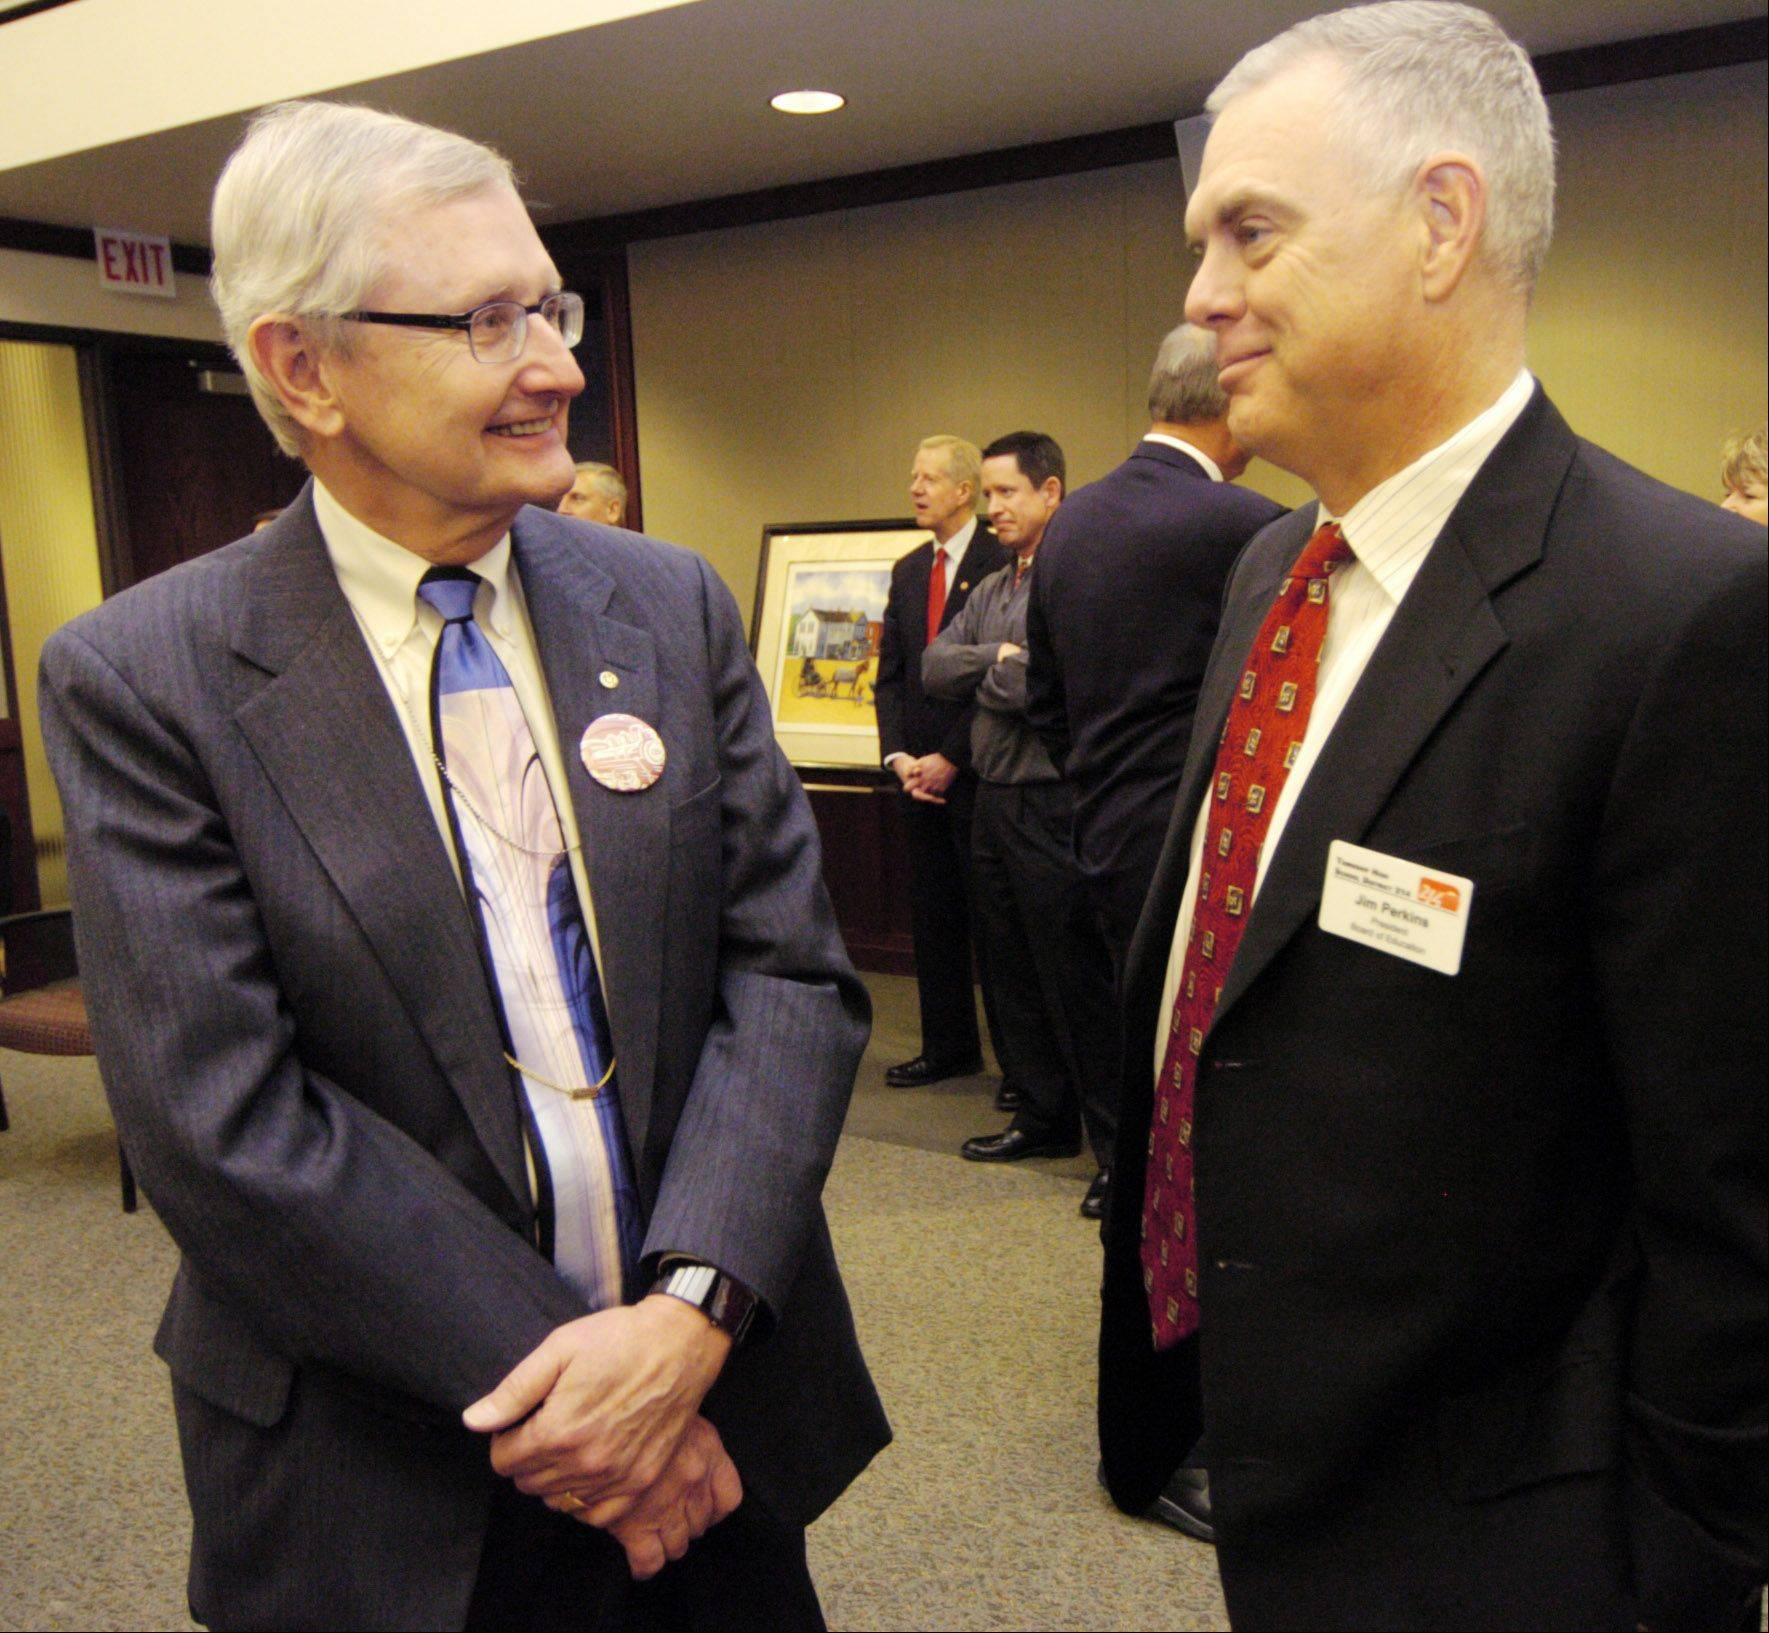 Bob Paddock, executive vice president of the Daily Herald, talks with Jim Perkins, president of the board of Northwest Suburban High School District 214, during the celebration of the 125th anniversary of Arlington Heights' incorporation.